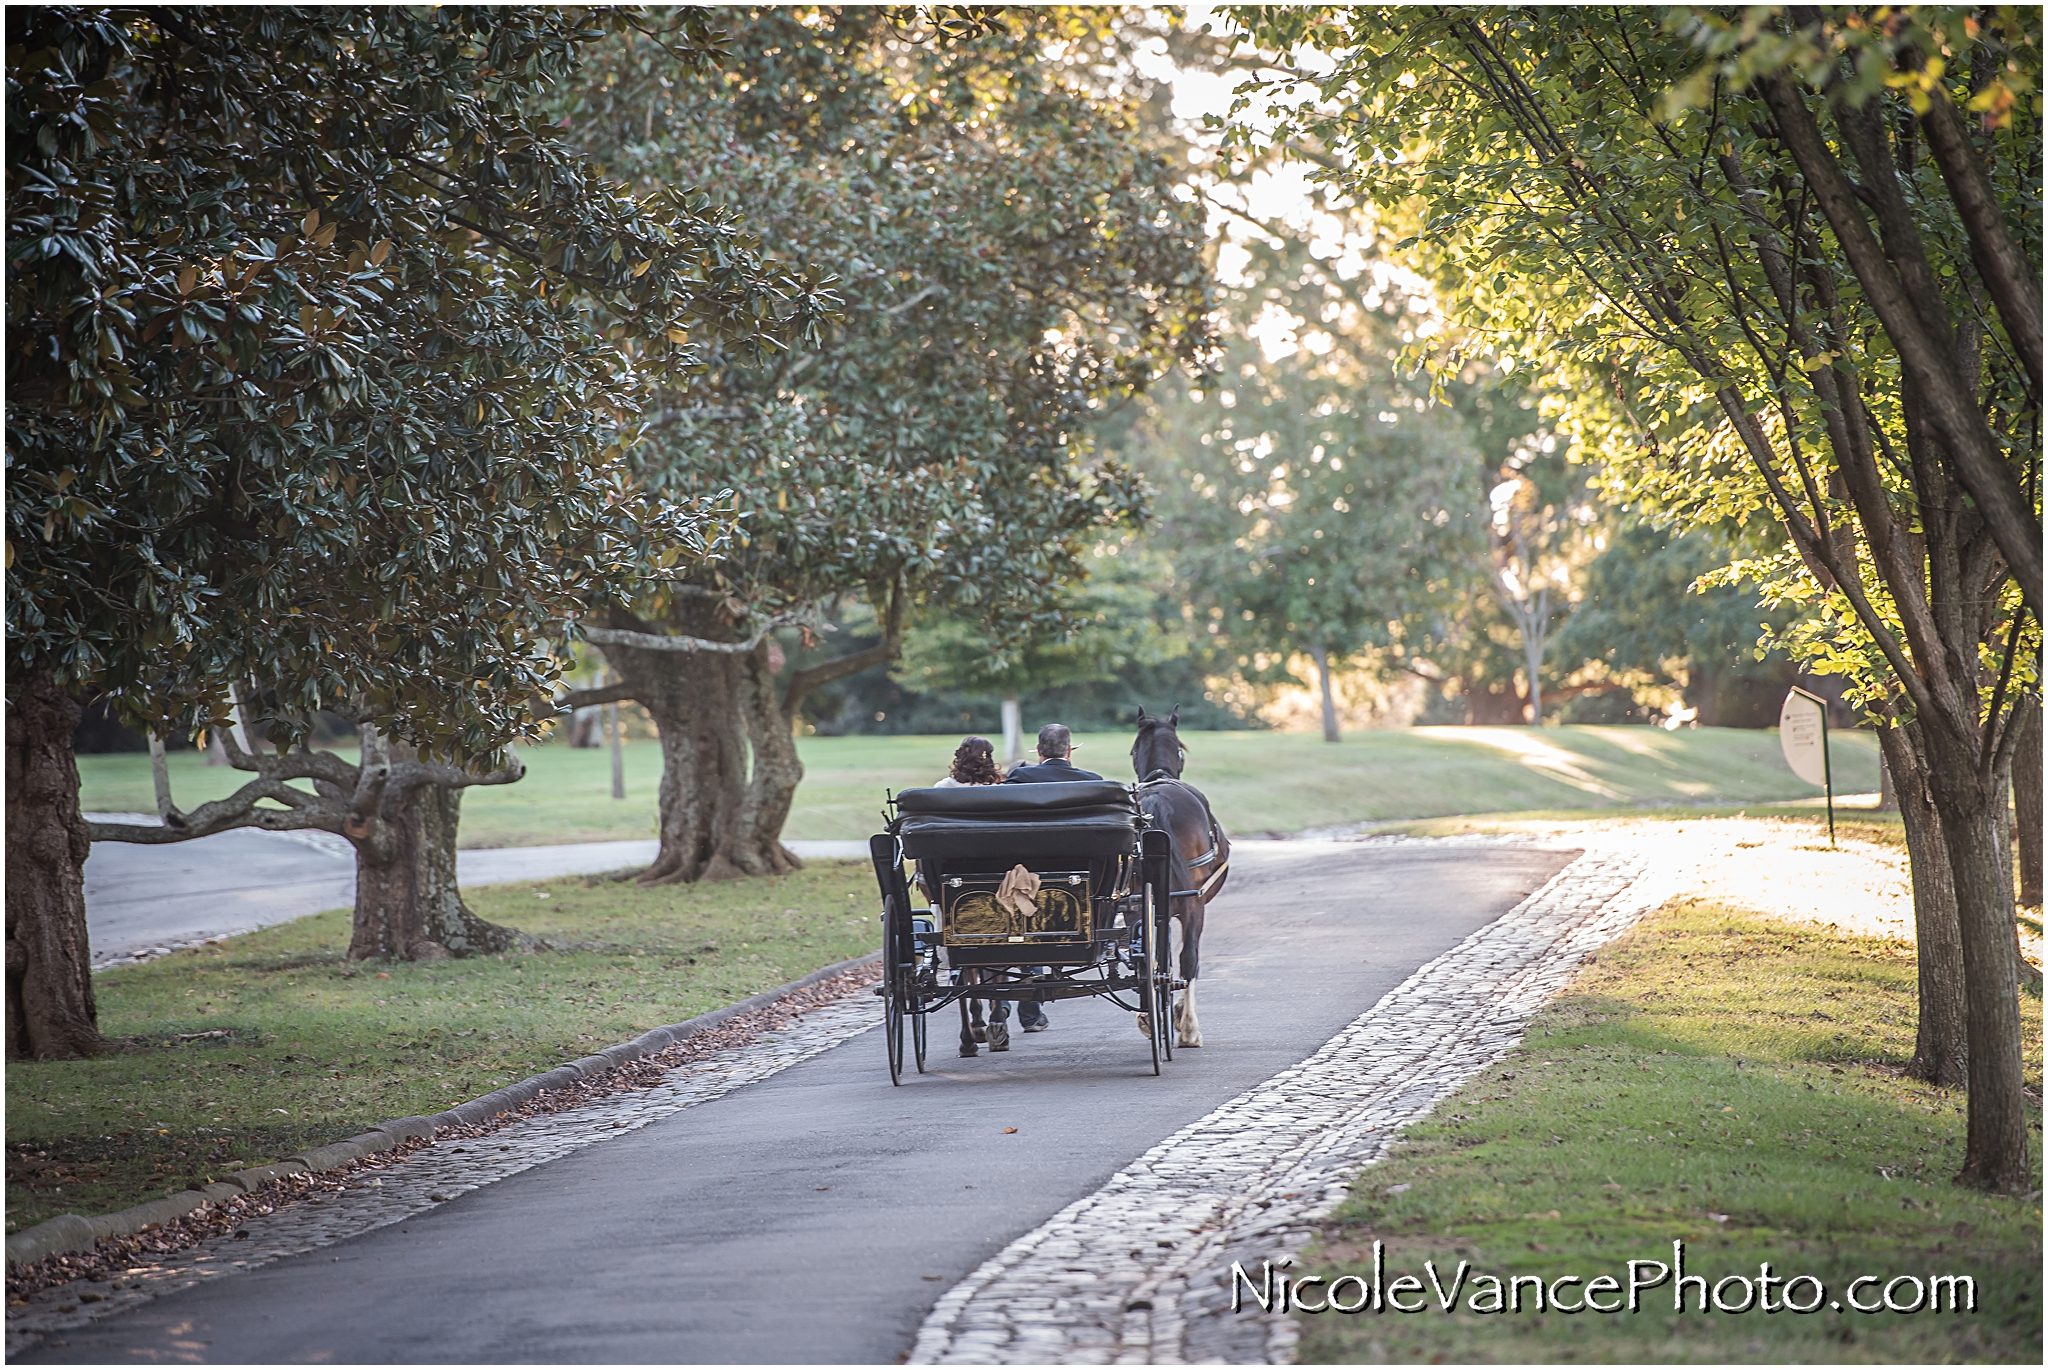 The newlyweds enjoy a carriage ride around the park together directly after their wedding at Maymont Park.